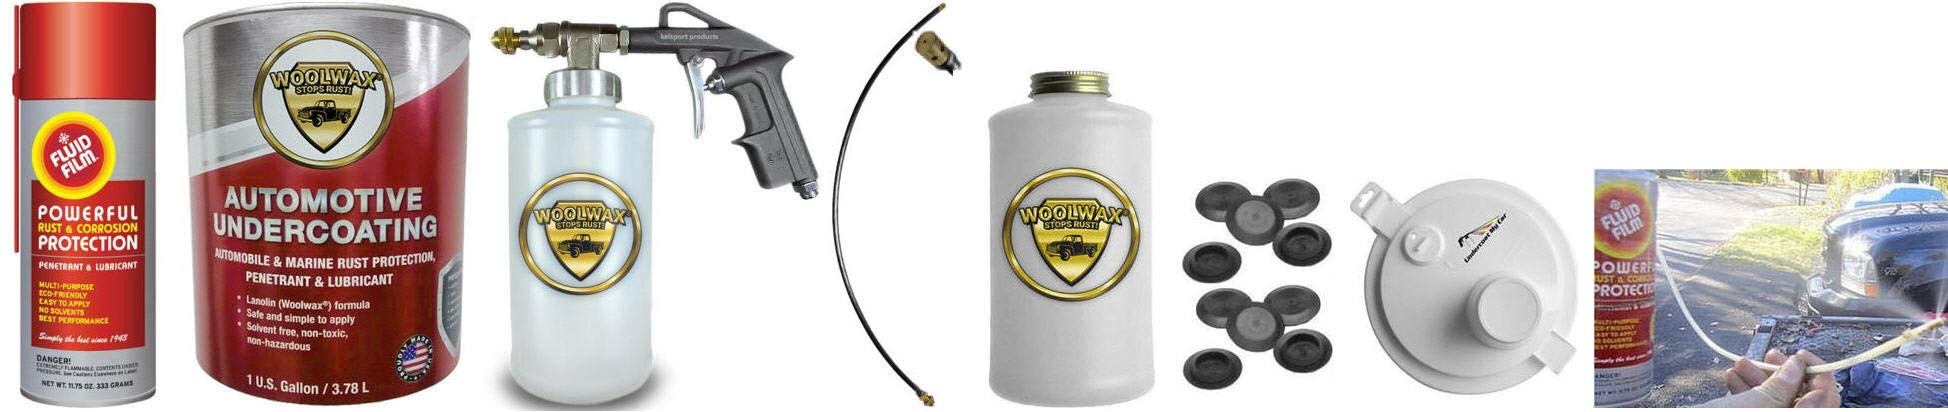 Fluid Film & Woolwax 1 Gallon Undercoating Kit Bundle w/PRO Gun. Straw(Clear) Color. by woolwax (Image #1)